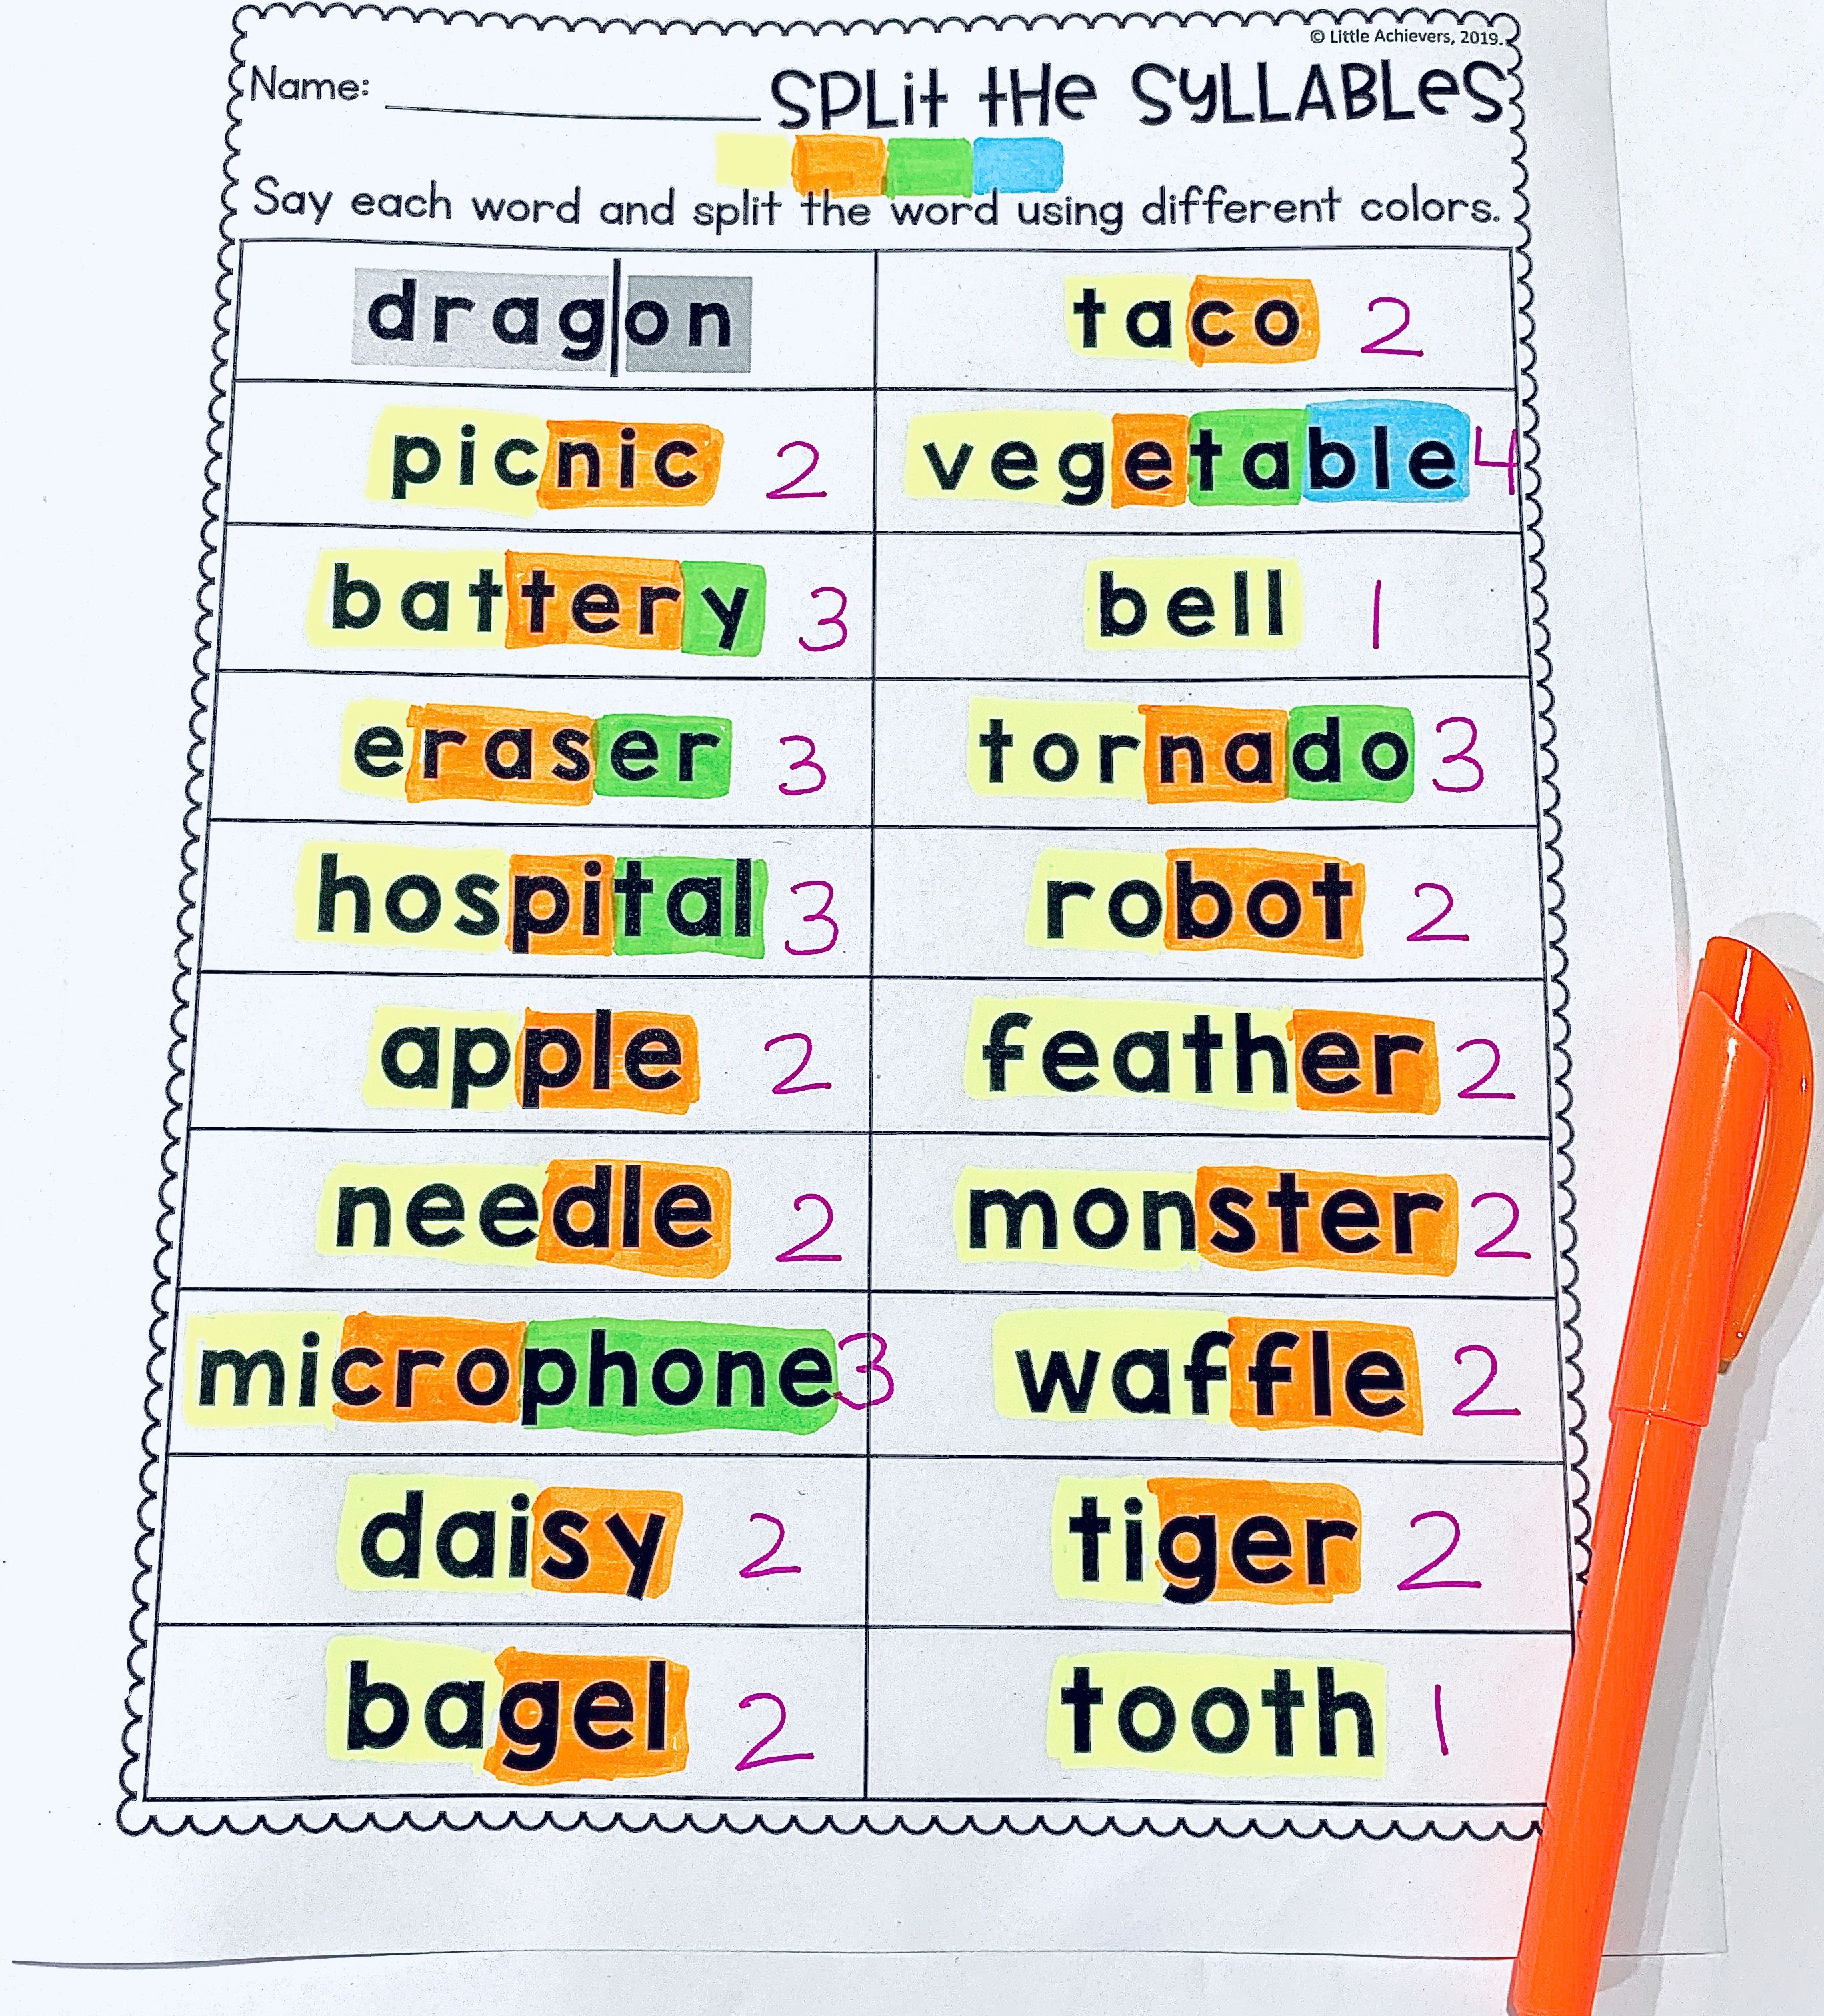 hight resolution of Syllables Worksheets (Counting Syllables Activities)   Syllable worksheet